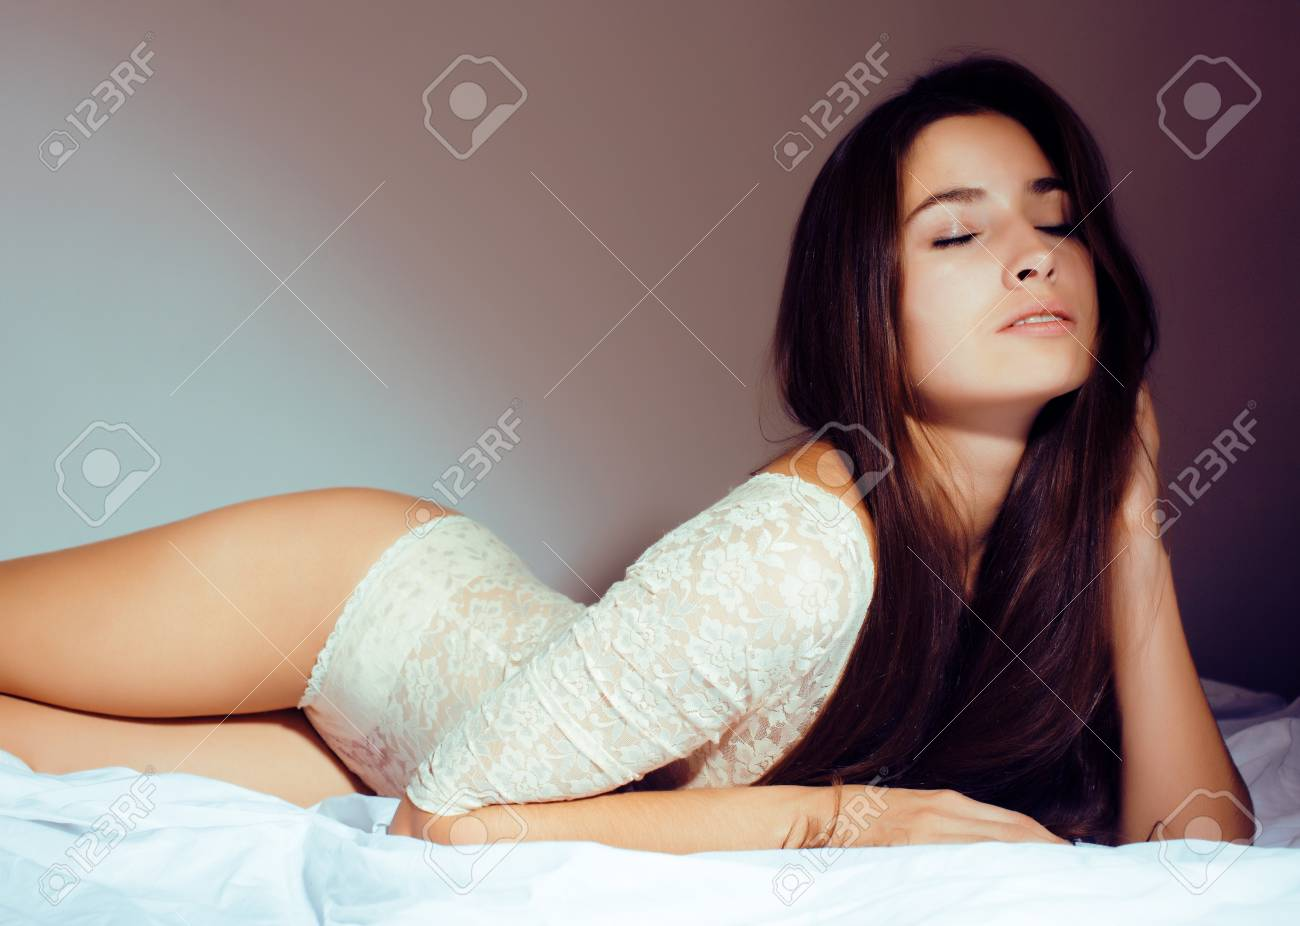 Sexy women bed